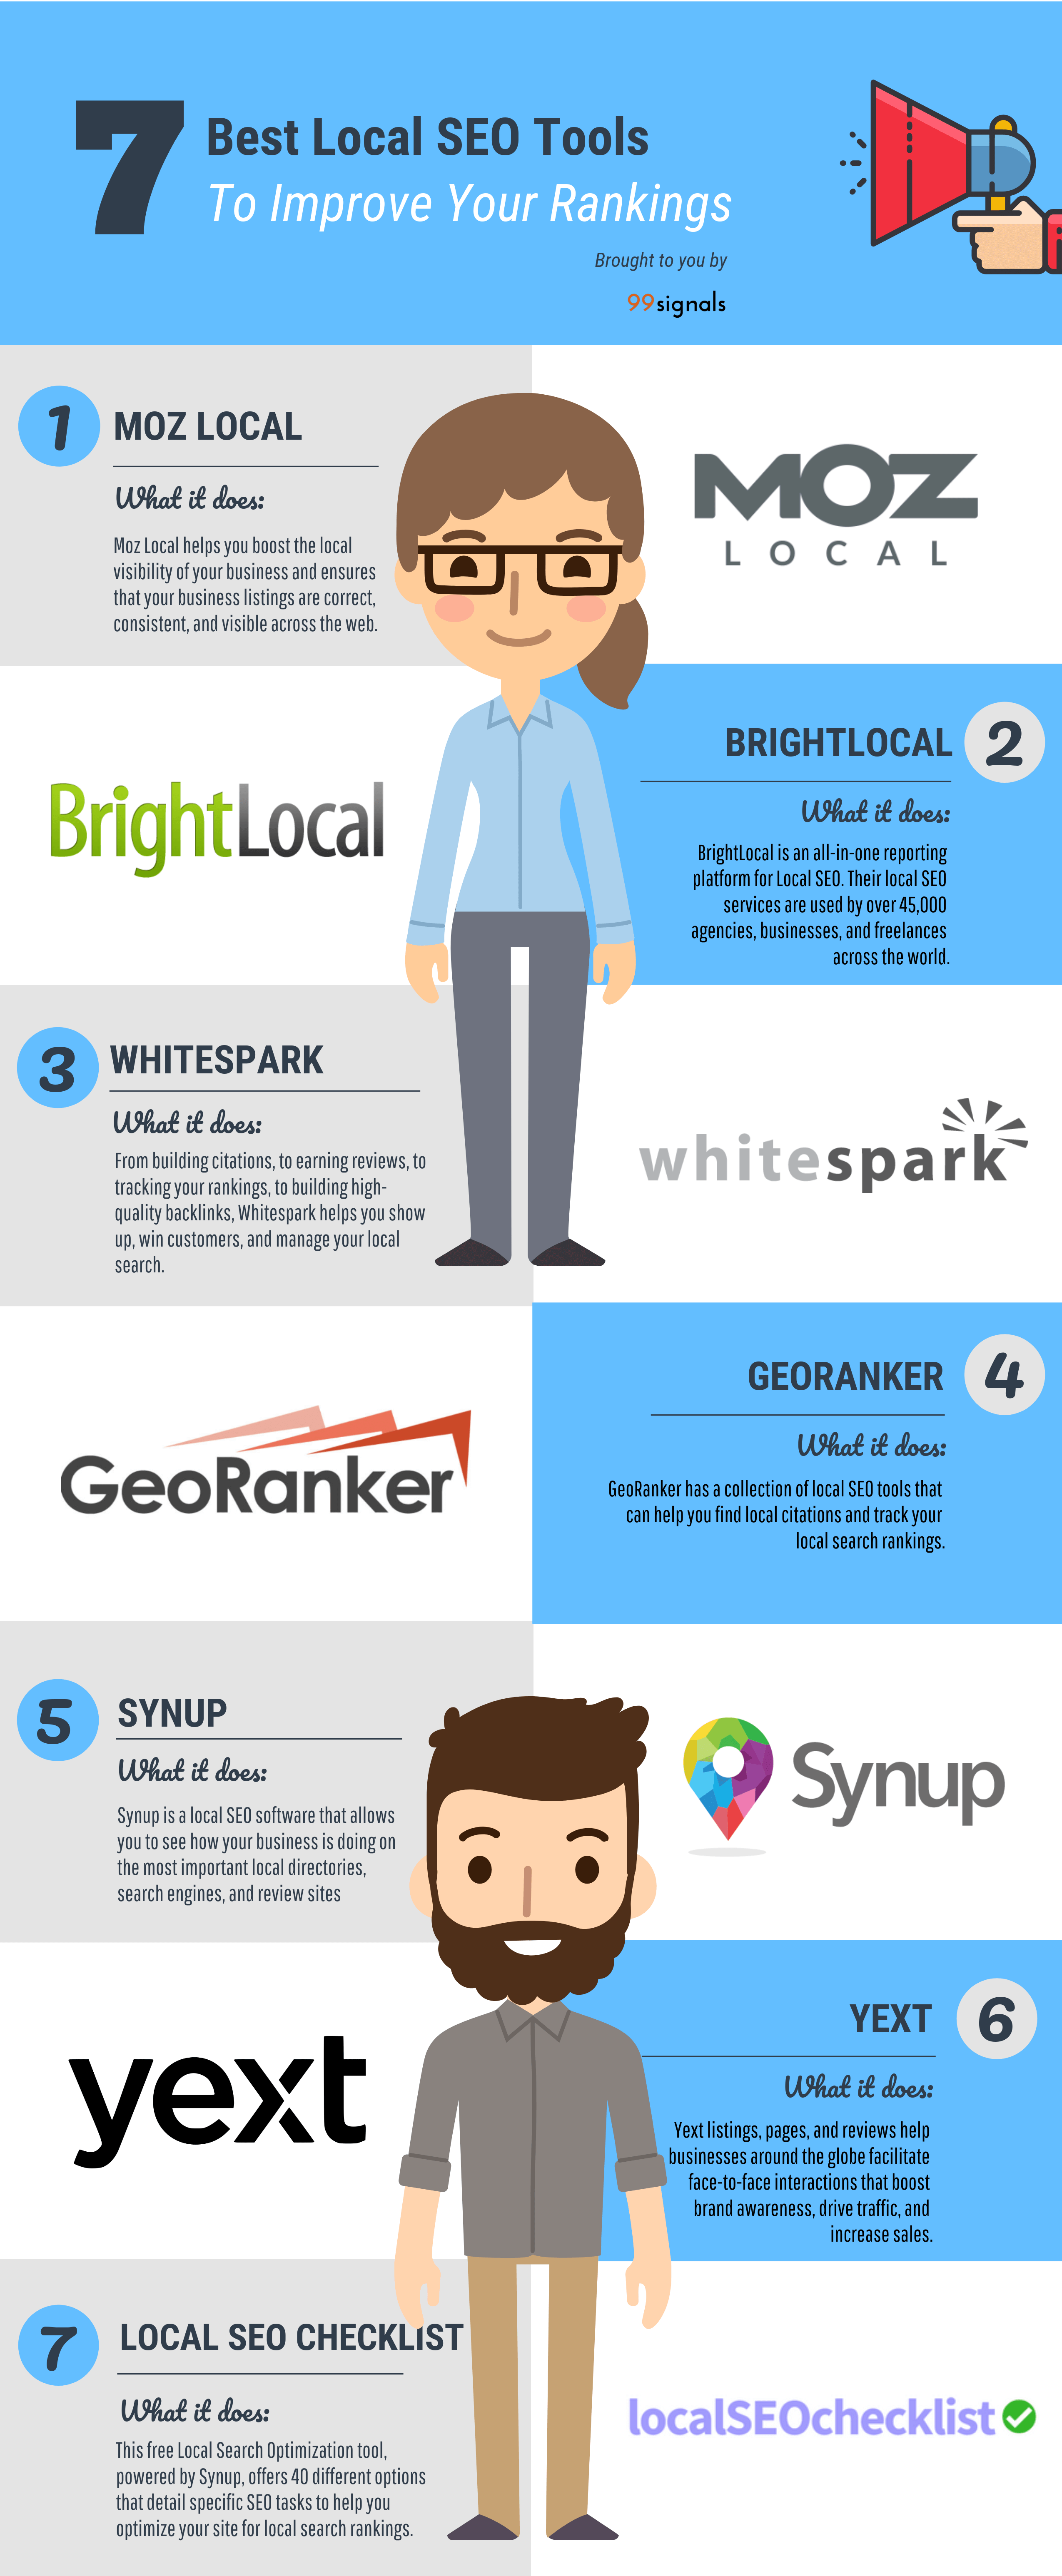 SEO Marketing Infographic Local SEO Tools: 7 Best Tools to Improve Your Local Search Rankings